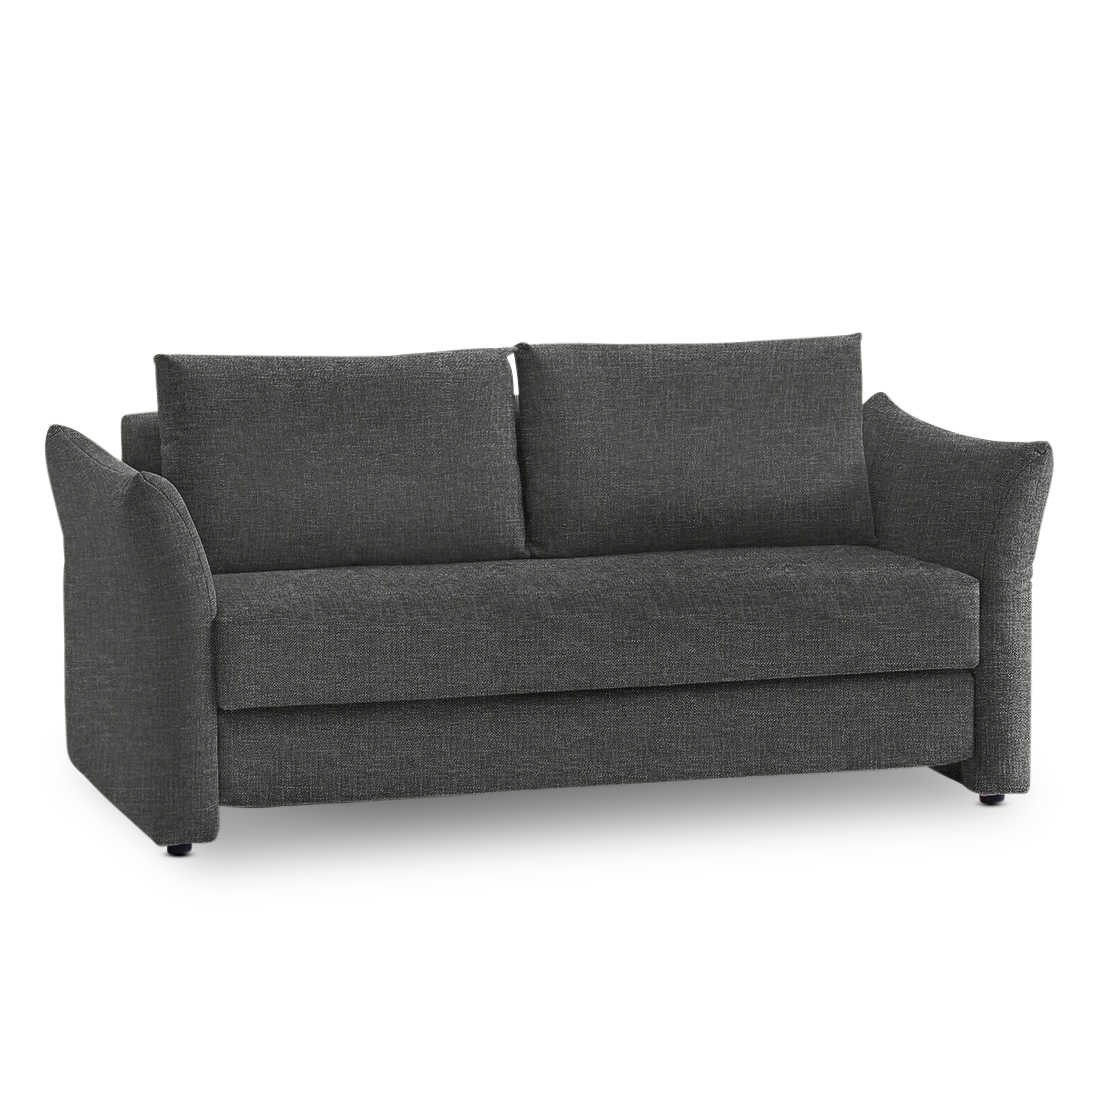 franz fertig schlafsofa loris grau stoff online kaufen bei woonio. Black Bedroom Furniture Sets. Home Design Ideas